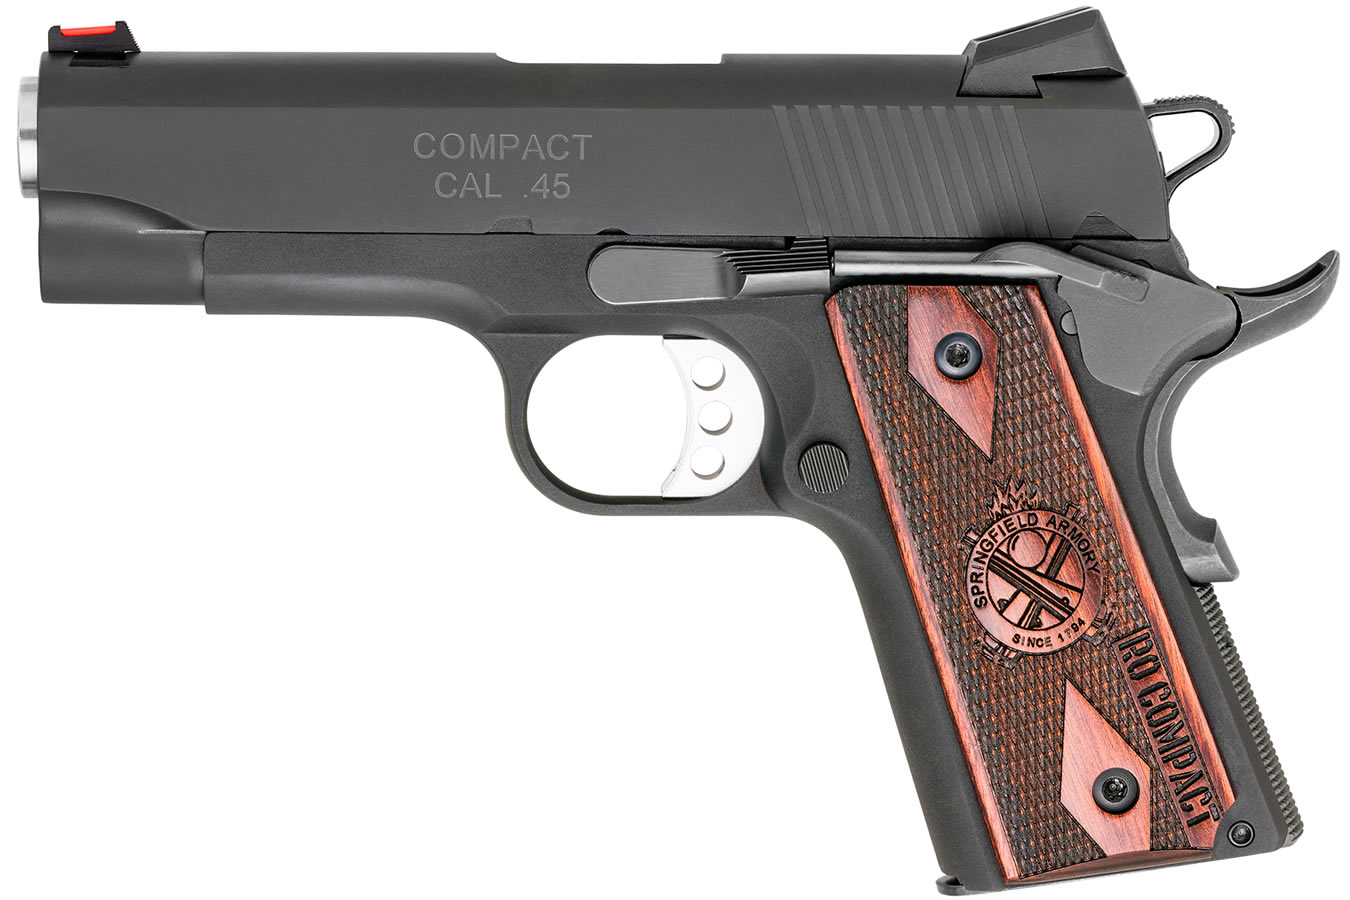 No. 19 Best Selling: SPRINGFIELD 1911 RANGE OFFICER COMPACT 45 ACP